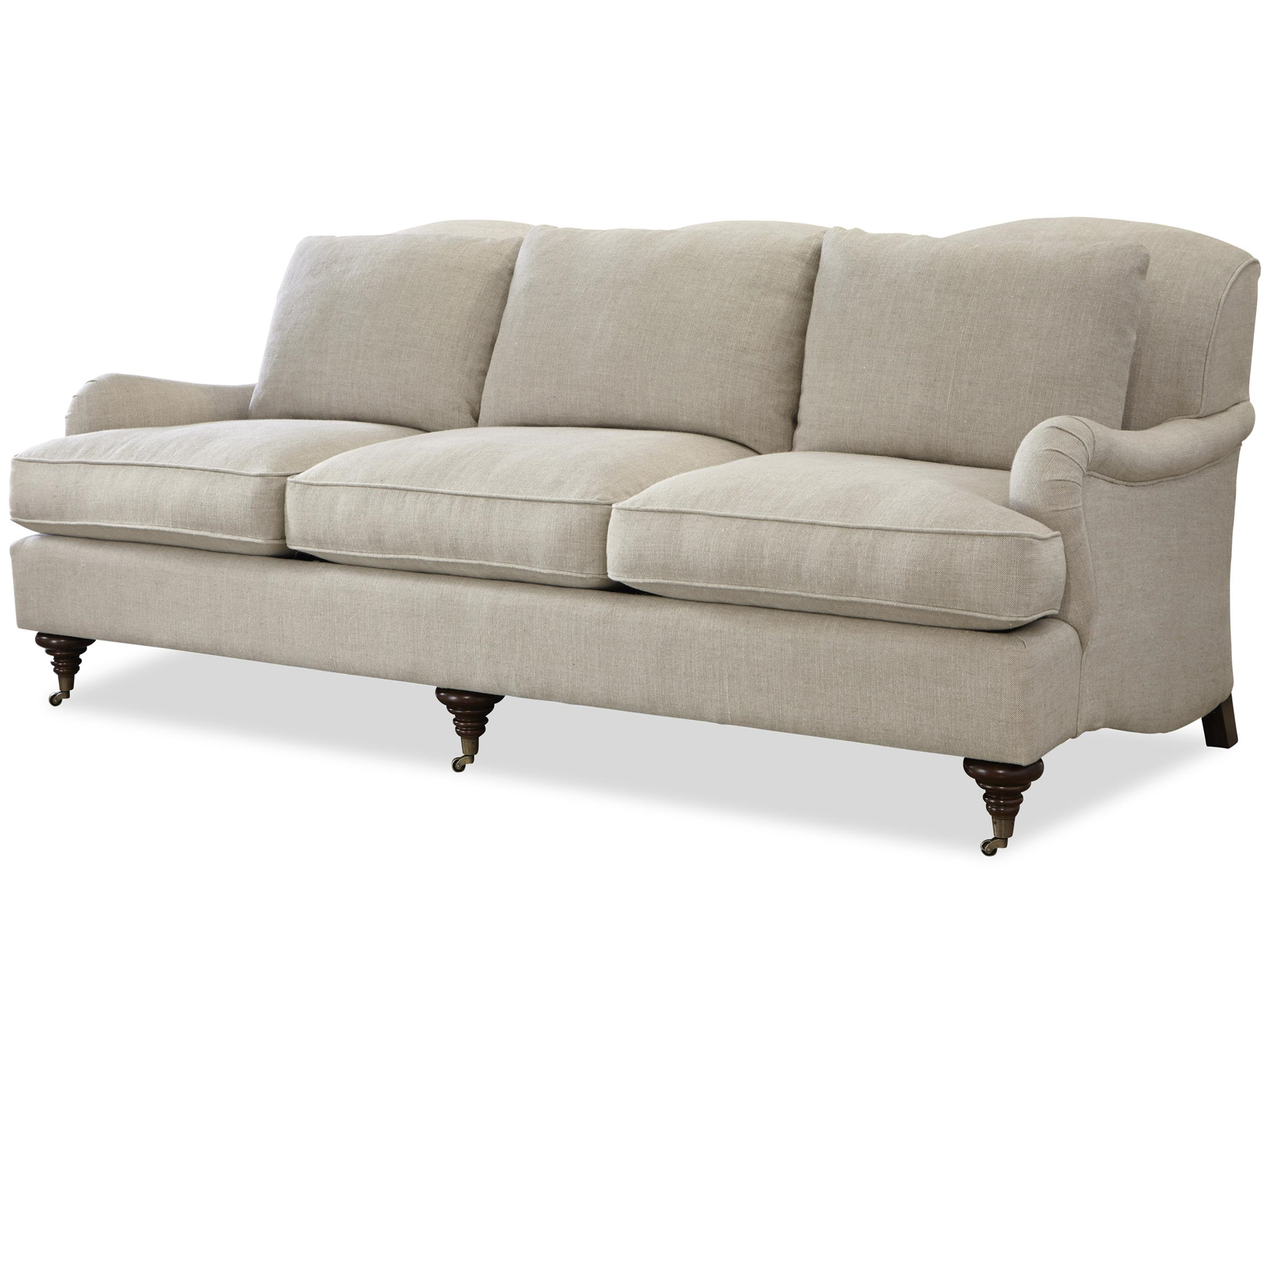 Stupendous Churchill Linen Upholstered English Rolled Arm Sofa Gamerscity Chair Design For Home Gamerscityorg